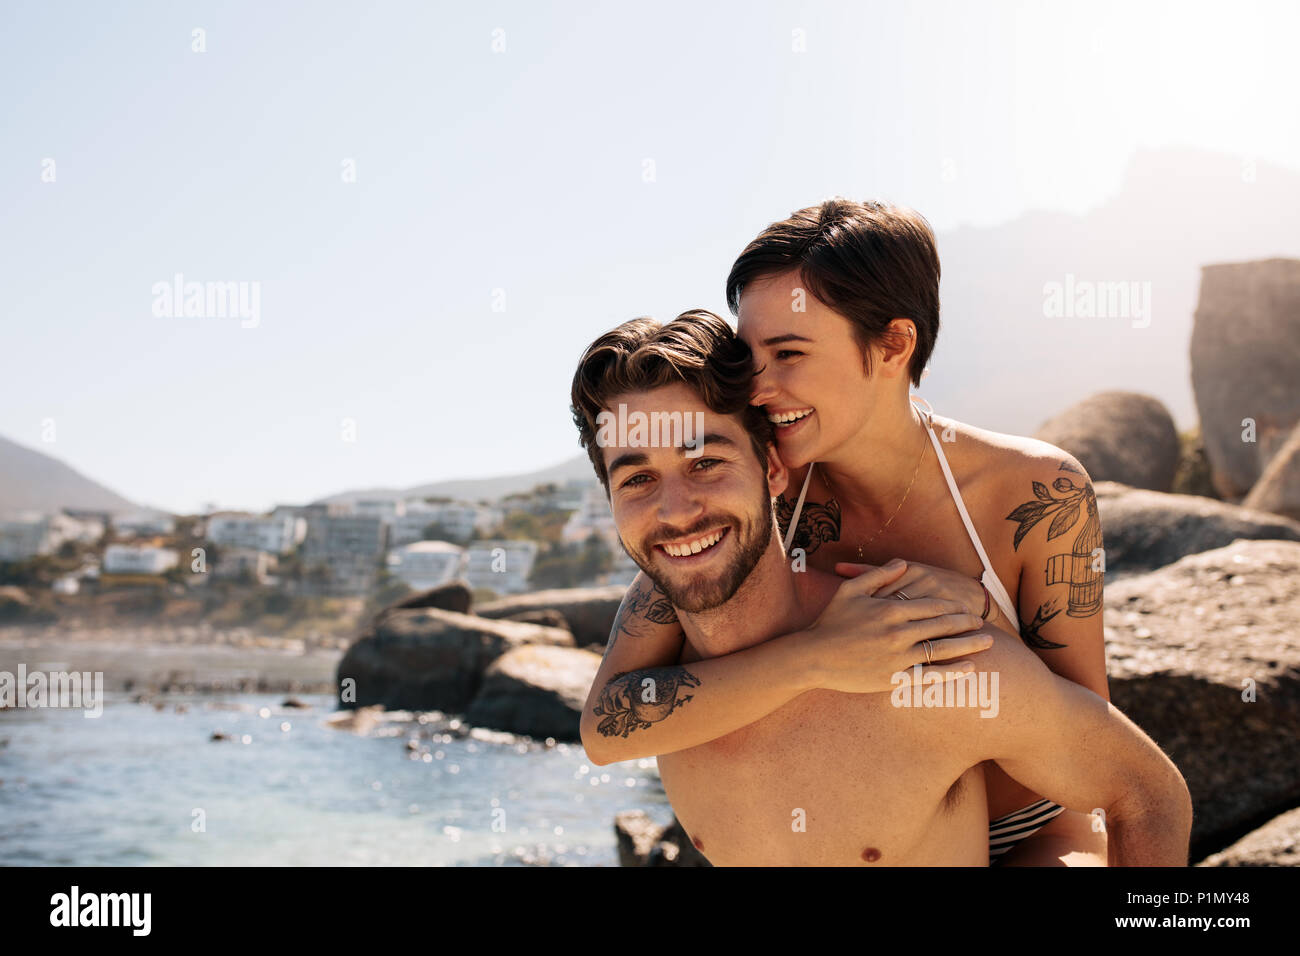 Man carrying woman on his back at the beach on a holiday. Tourist couple in a happy and romantic mood enjoying a holiday. - Stock Image